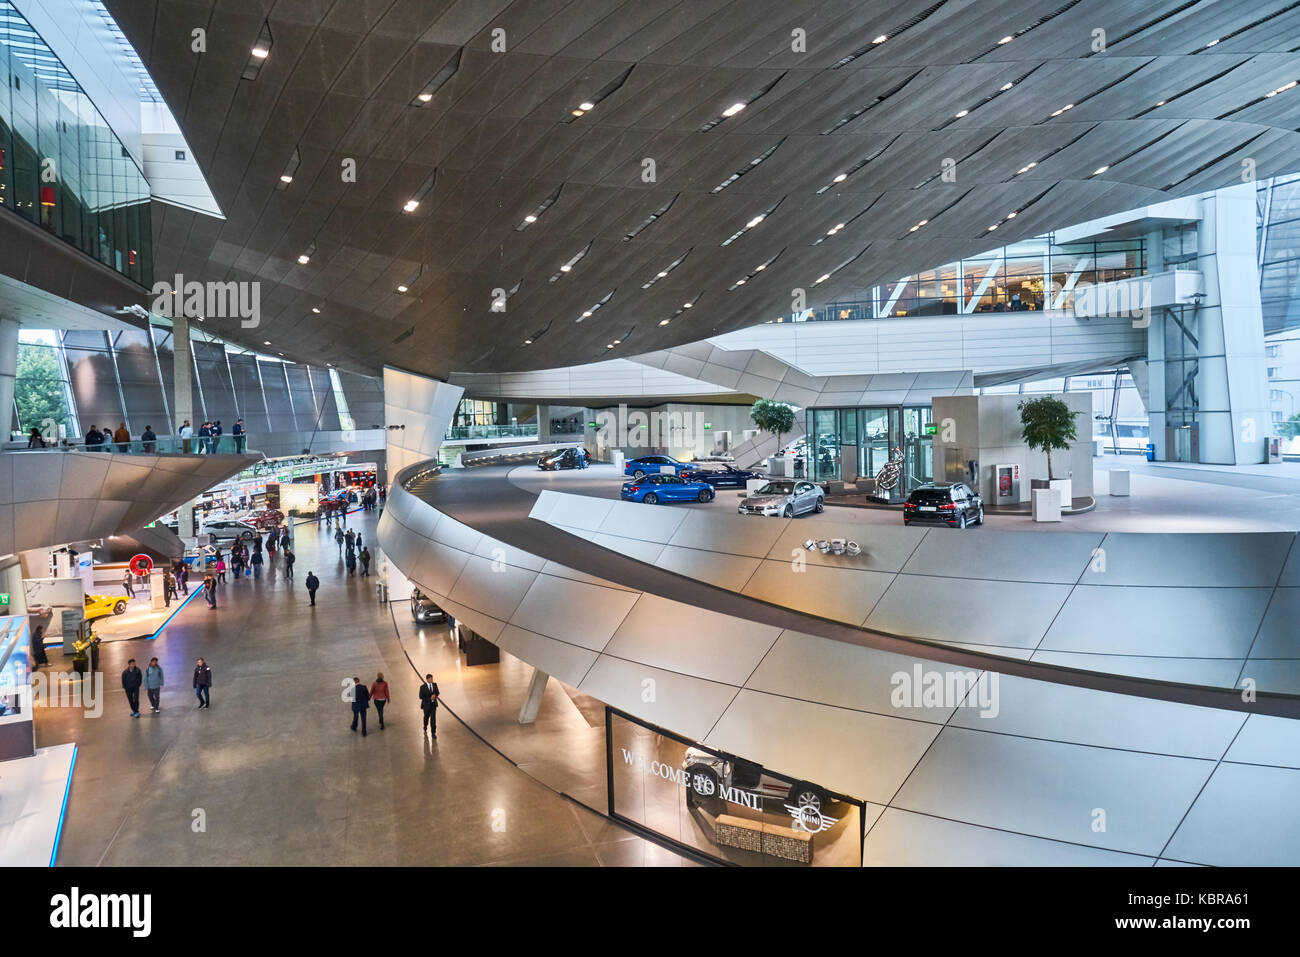 BMW World (BMW Welt) in Munich, Germany. BMW World is a multi-functional customer experience and exhibition facility - Stock Image